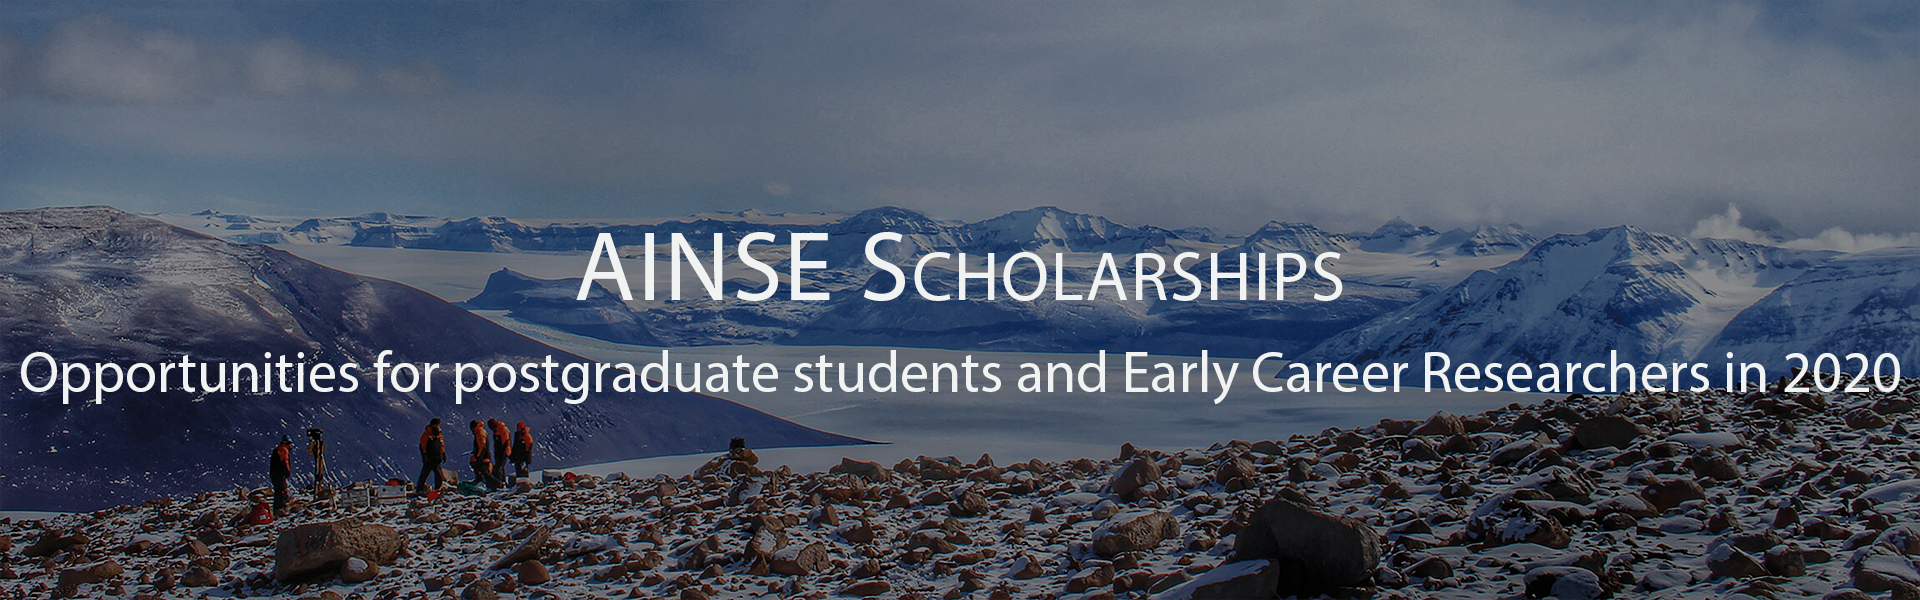 AINSE Scholarships